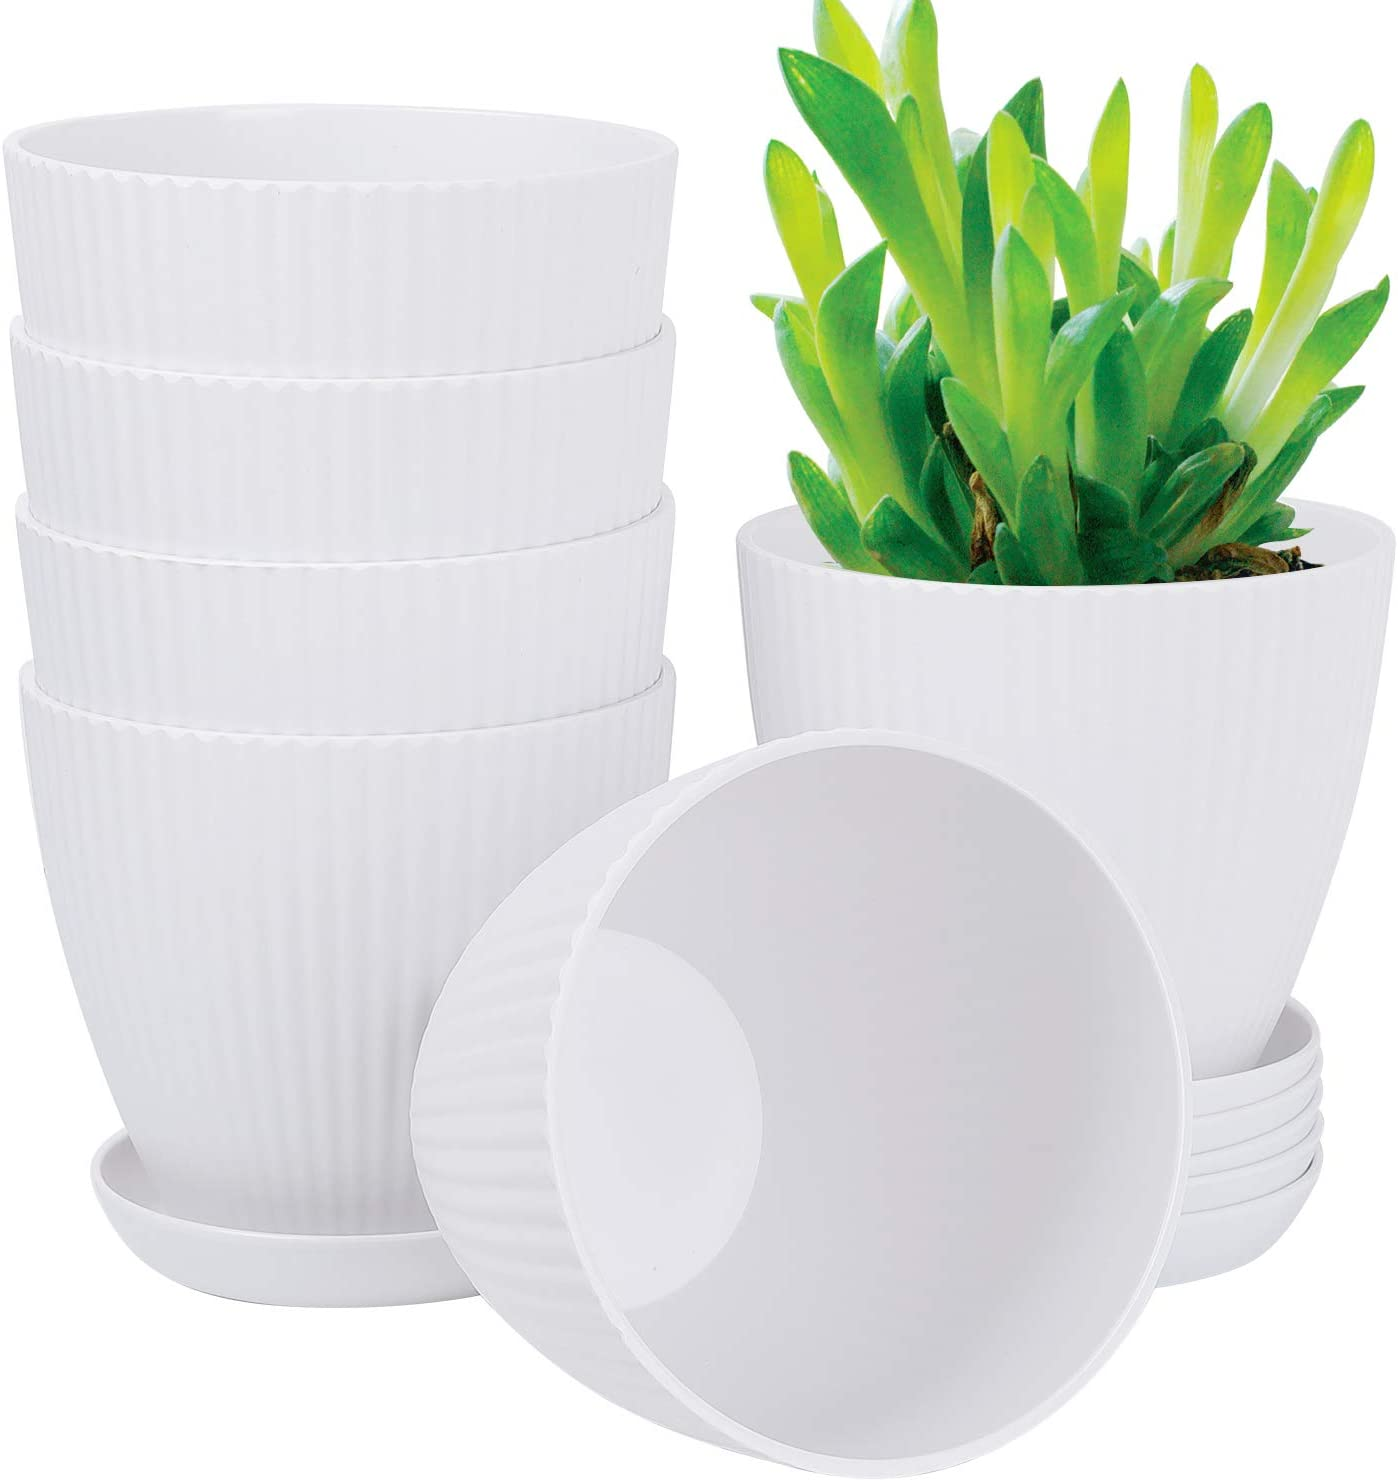 6 Inch Plant Flower Pots Indoor Plastic Planters with Drainage Hole Set of 6 Modern Planting Pots Great for Plants, Herbs, African Violets, Foliage Plants, Crafts Home Decorations (White)